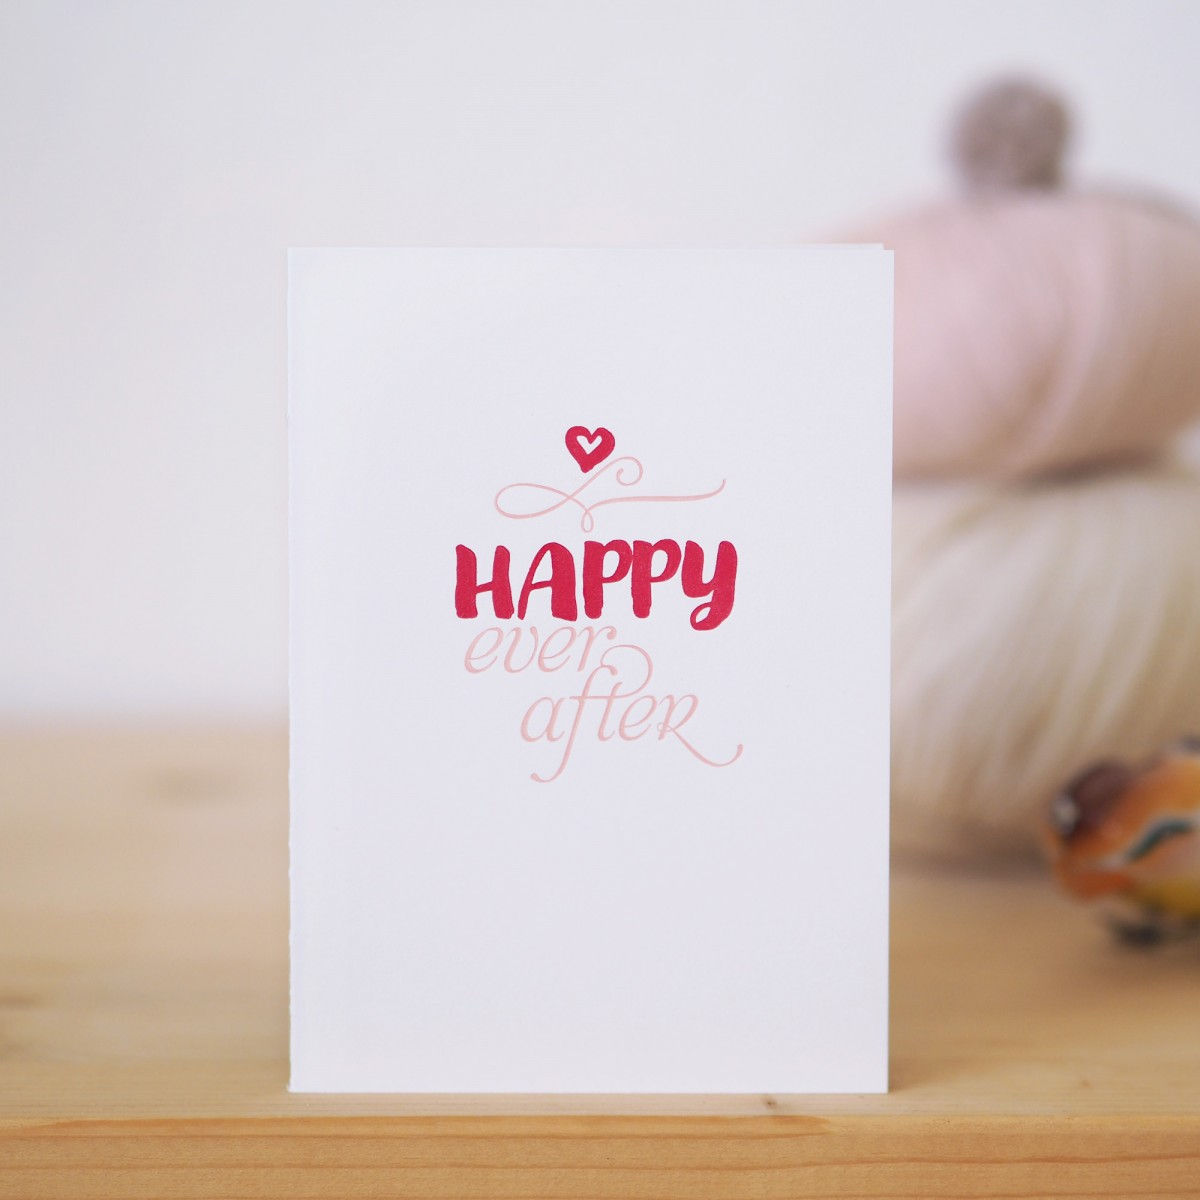 finicrafts Happy ever after Letterpress-Klappkarte mit Umschlag